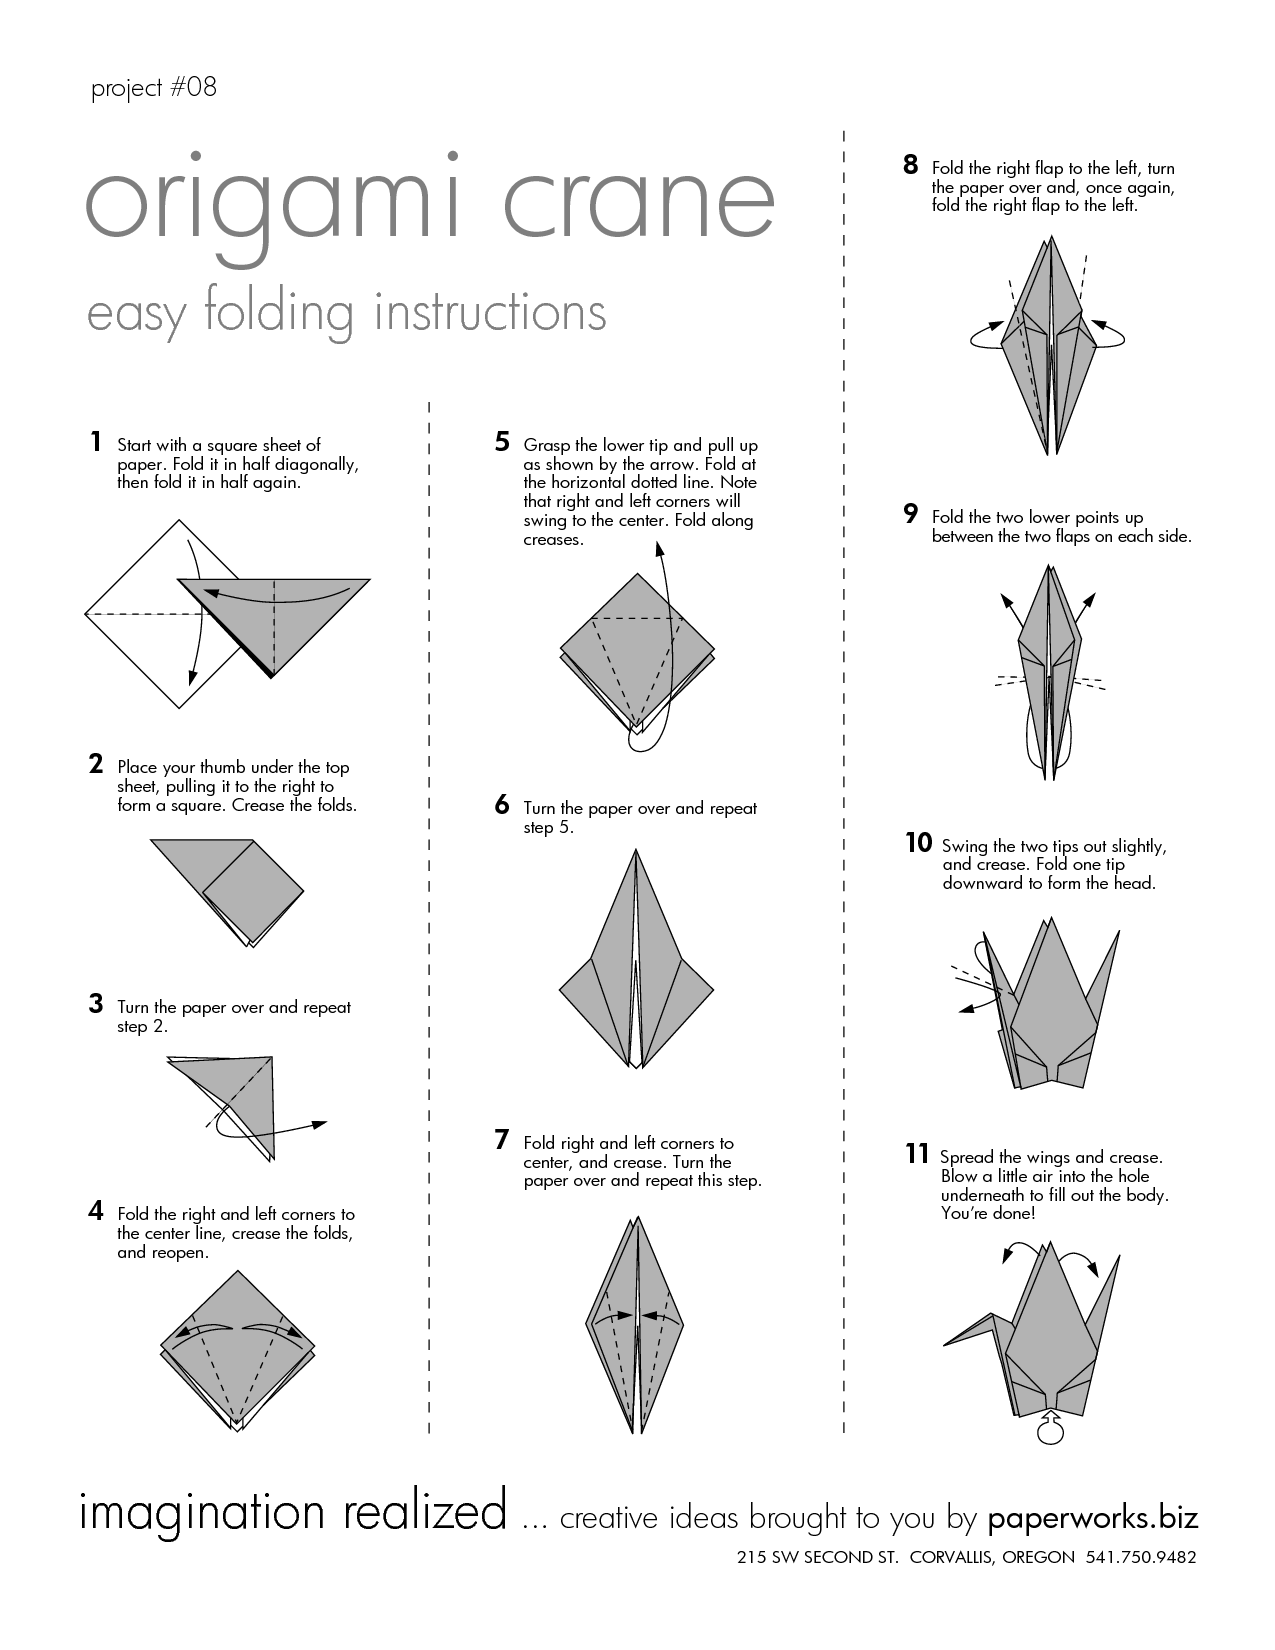 DIY How To Make Origami Crane For KIDS - Easy & Simple Origami ... | 1650x1275